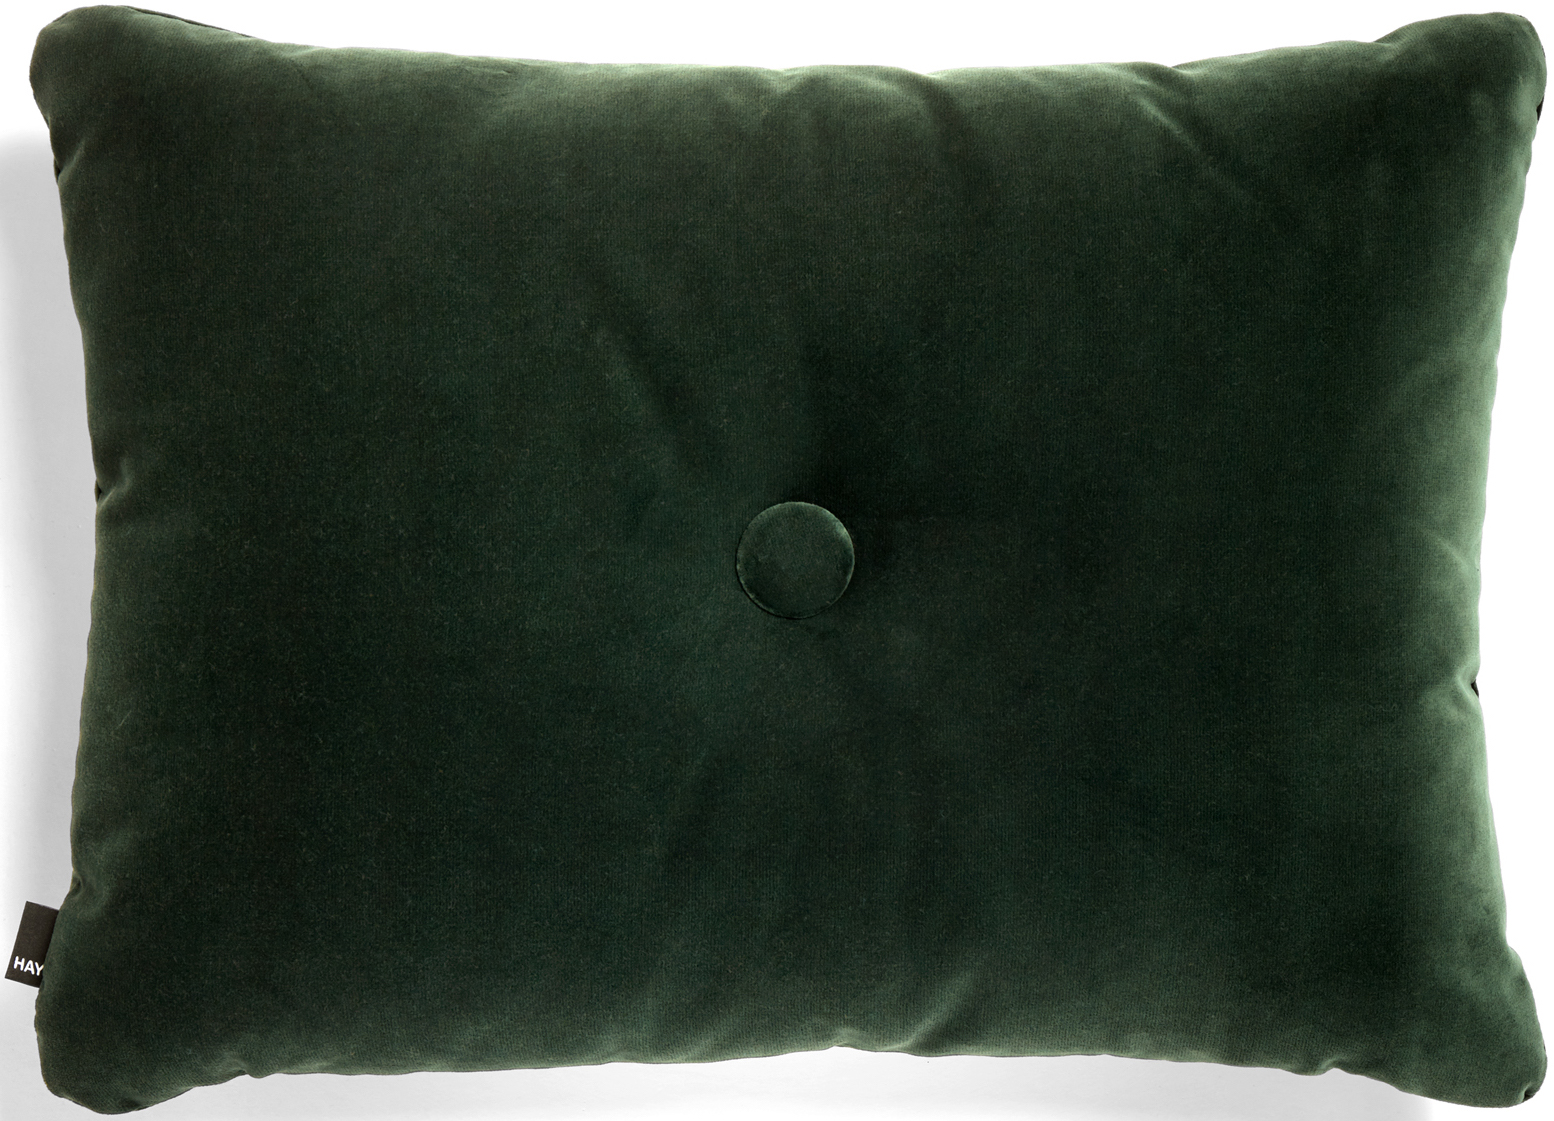 Hay eclectic collection - velvet cushion